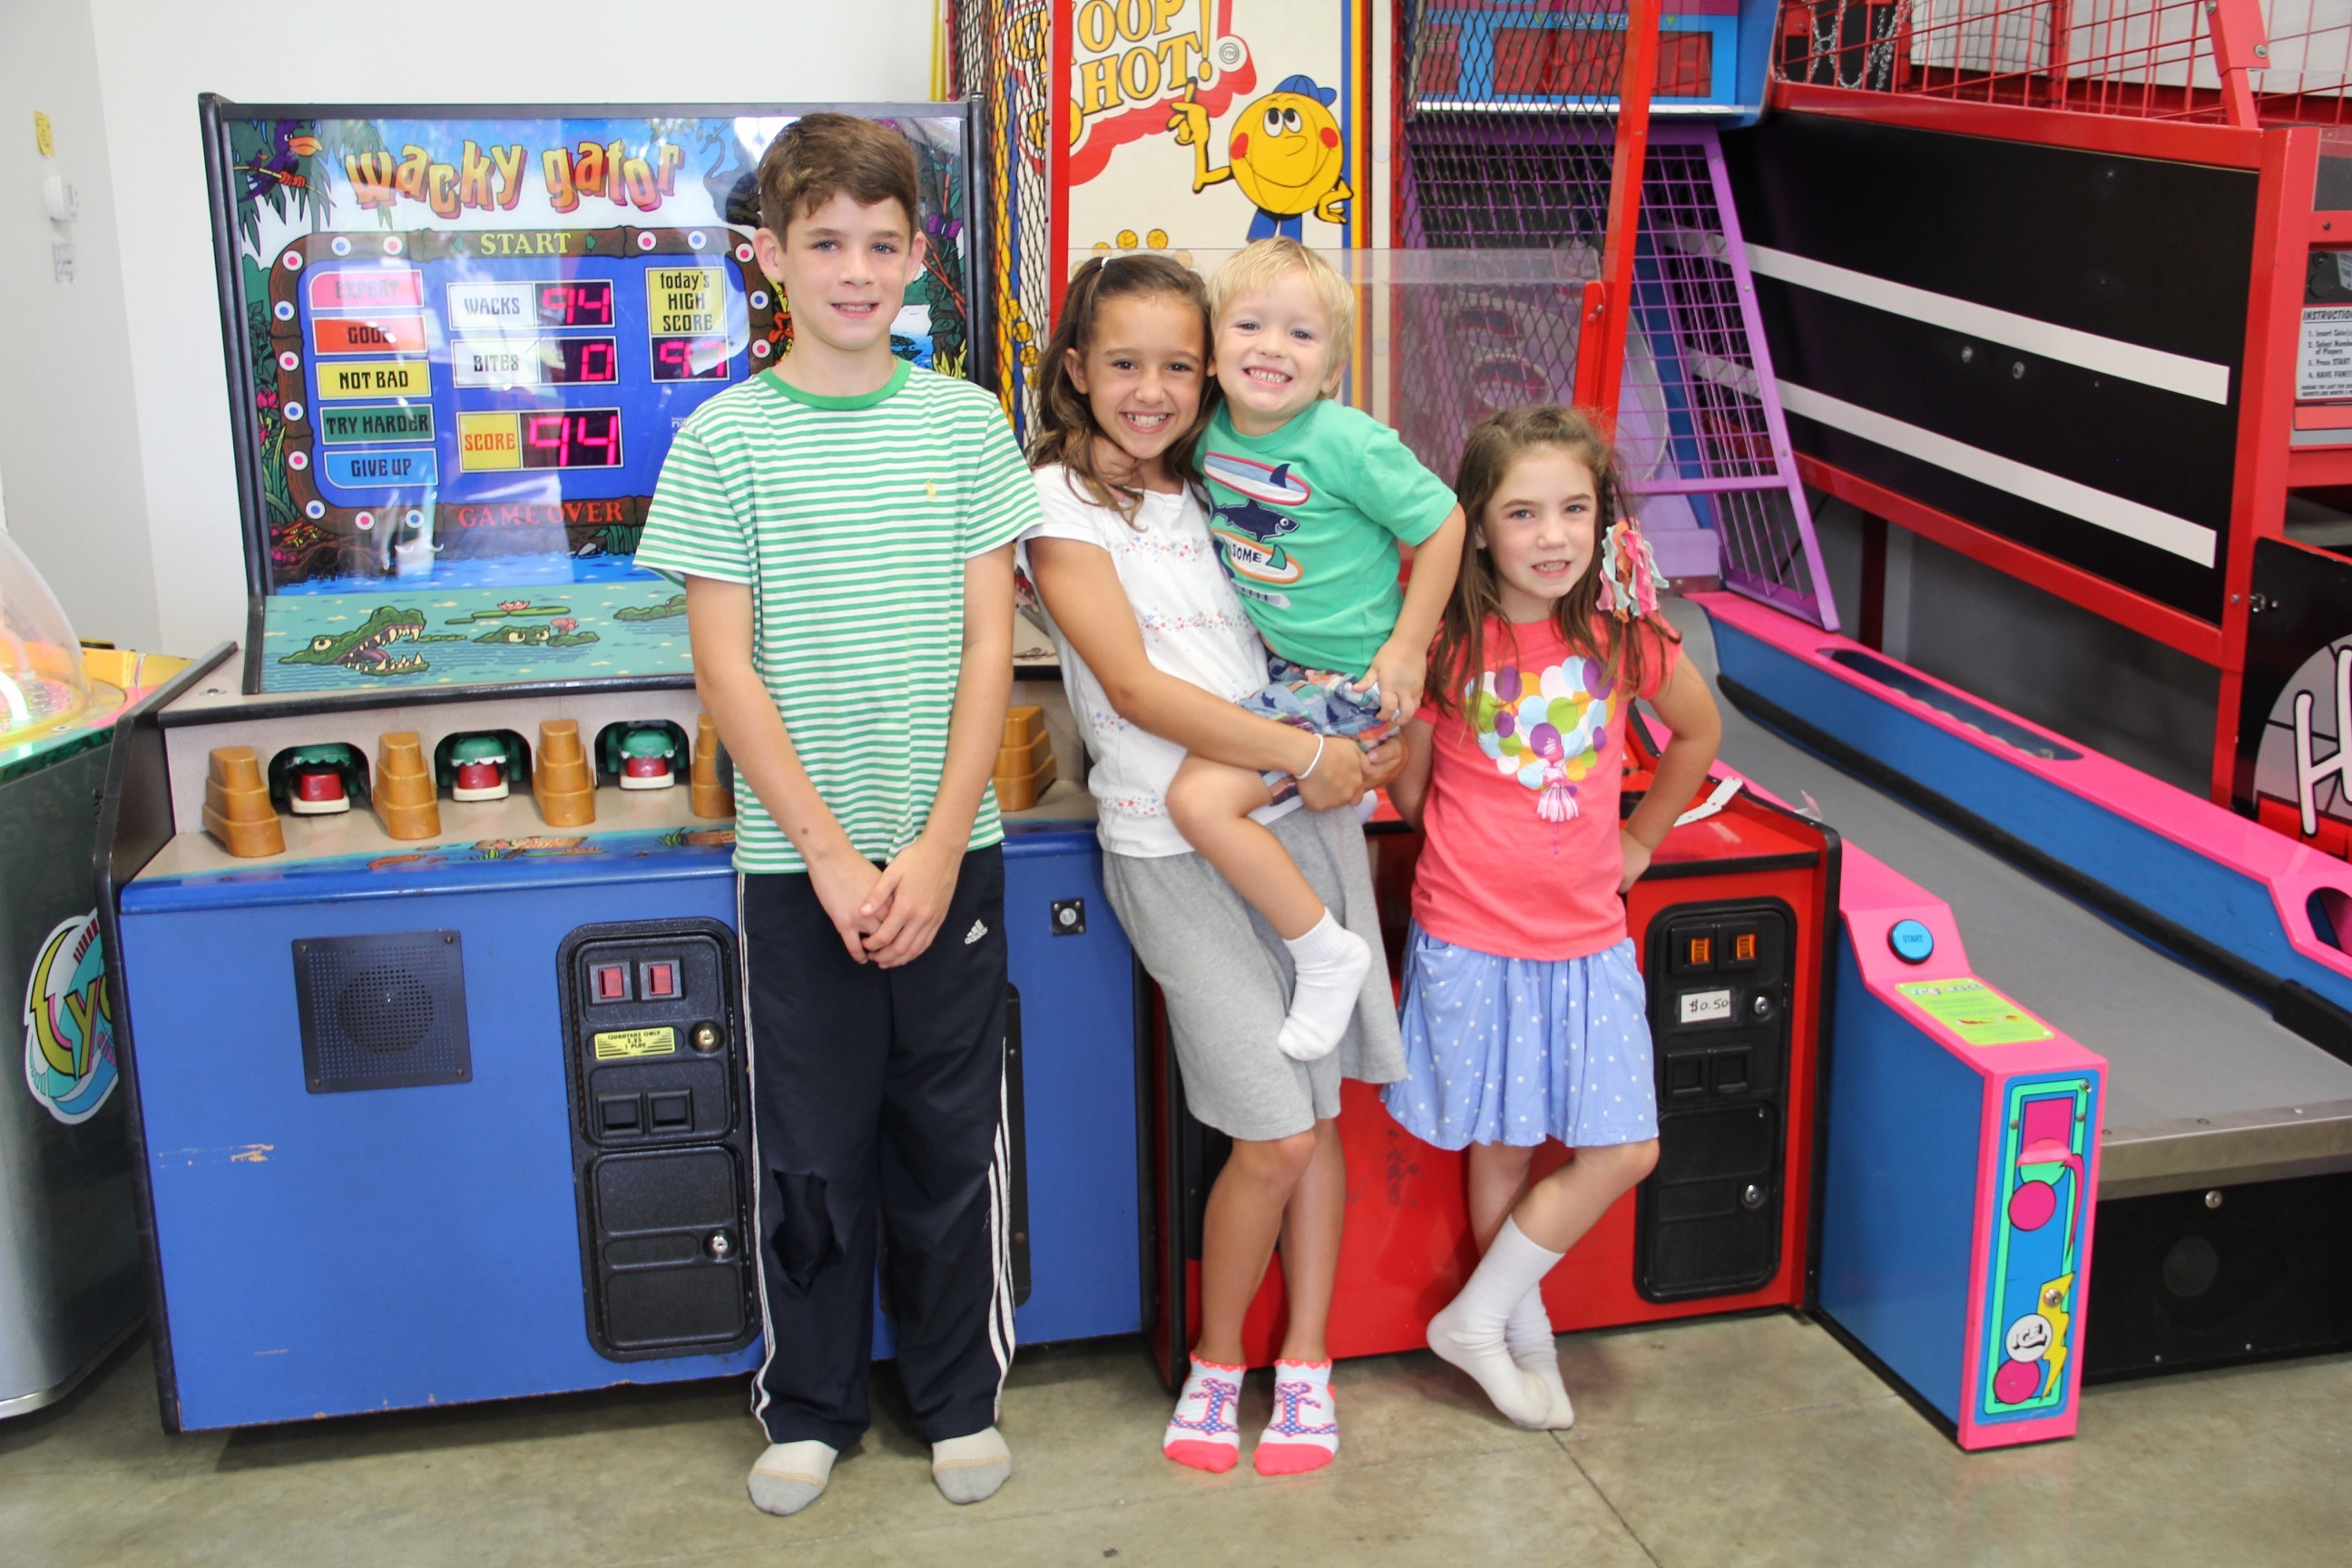 Big-Bounce-Arcade-games-family-time